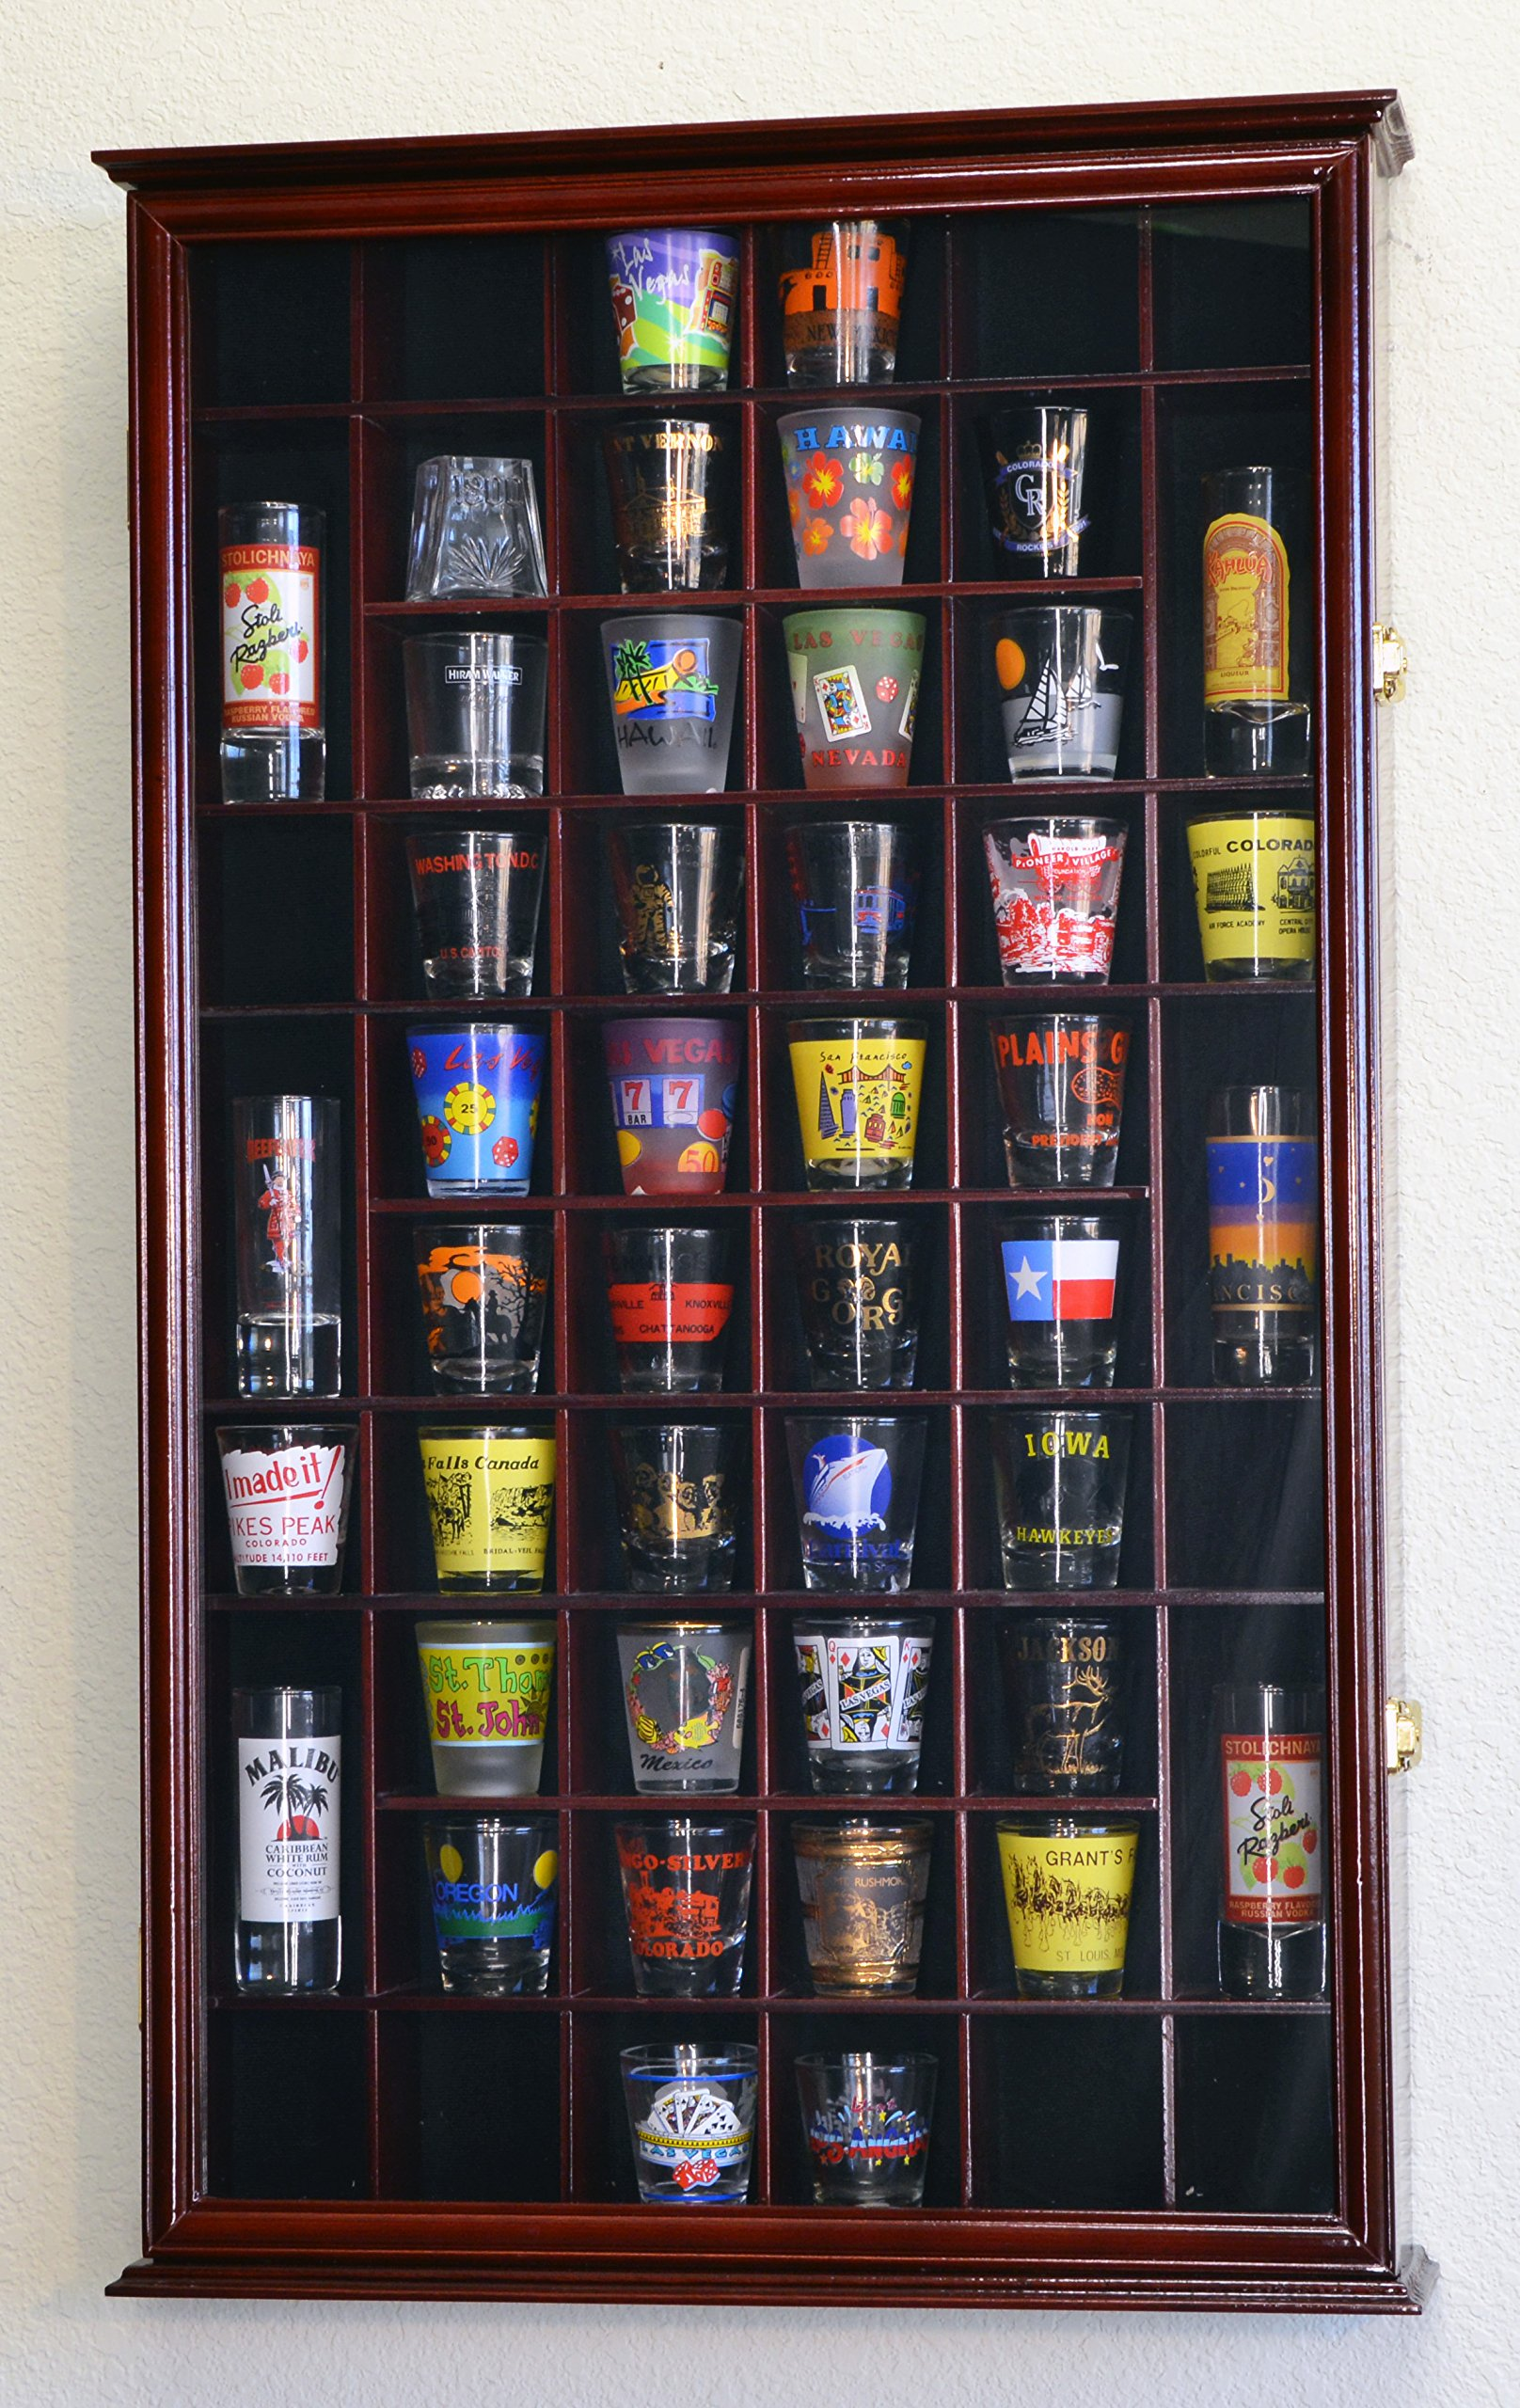 54 Shot Glass Shooter Display Case Holder Cabinet Wall Rack w/ UV Protection -Cherry by sfDisplay.com, Factory Direct Display Cases (Image #2)